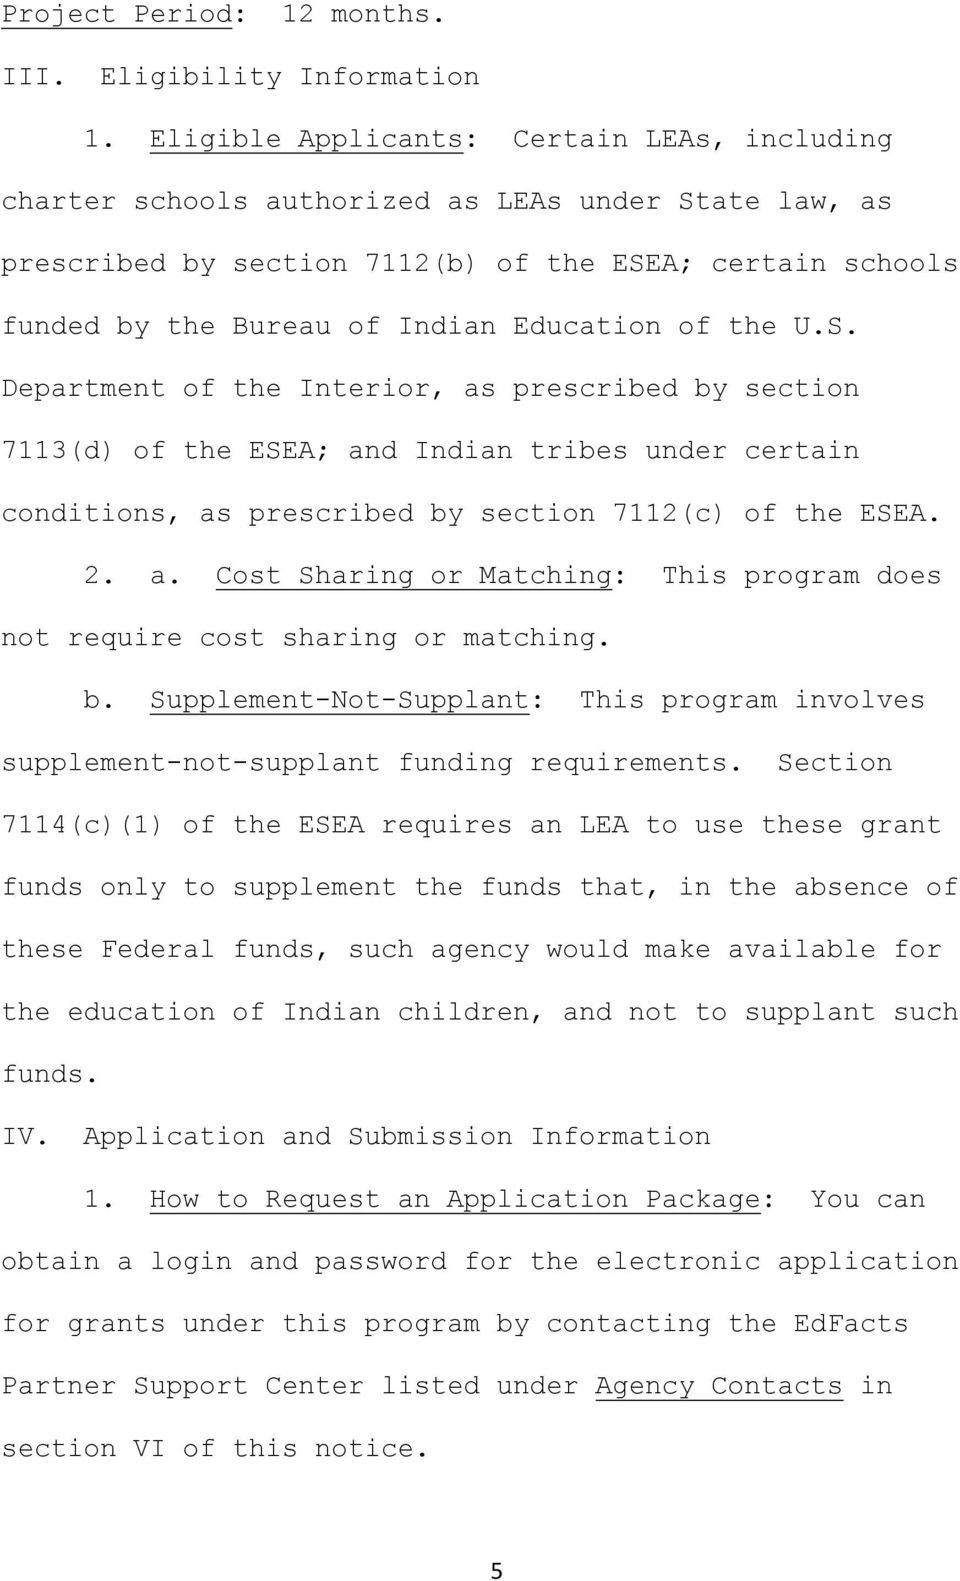 of the U.S. Department of the Interior, as prescribed by section 7113(d) of the ESEA; and Indian tribes under certain conditions, as prescribed by section 7112(c) of the ESEA. 2. a. Cost Sharing or Matching: This program does not require cost sharing or matching.